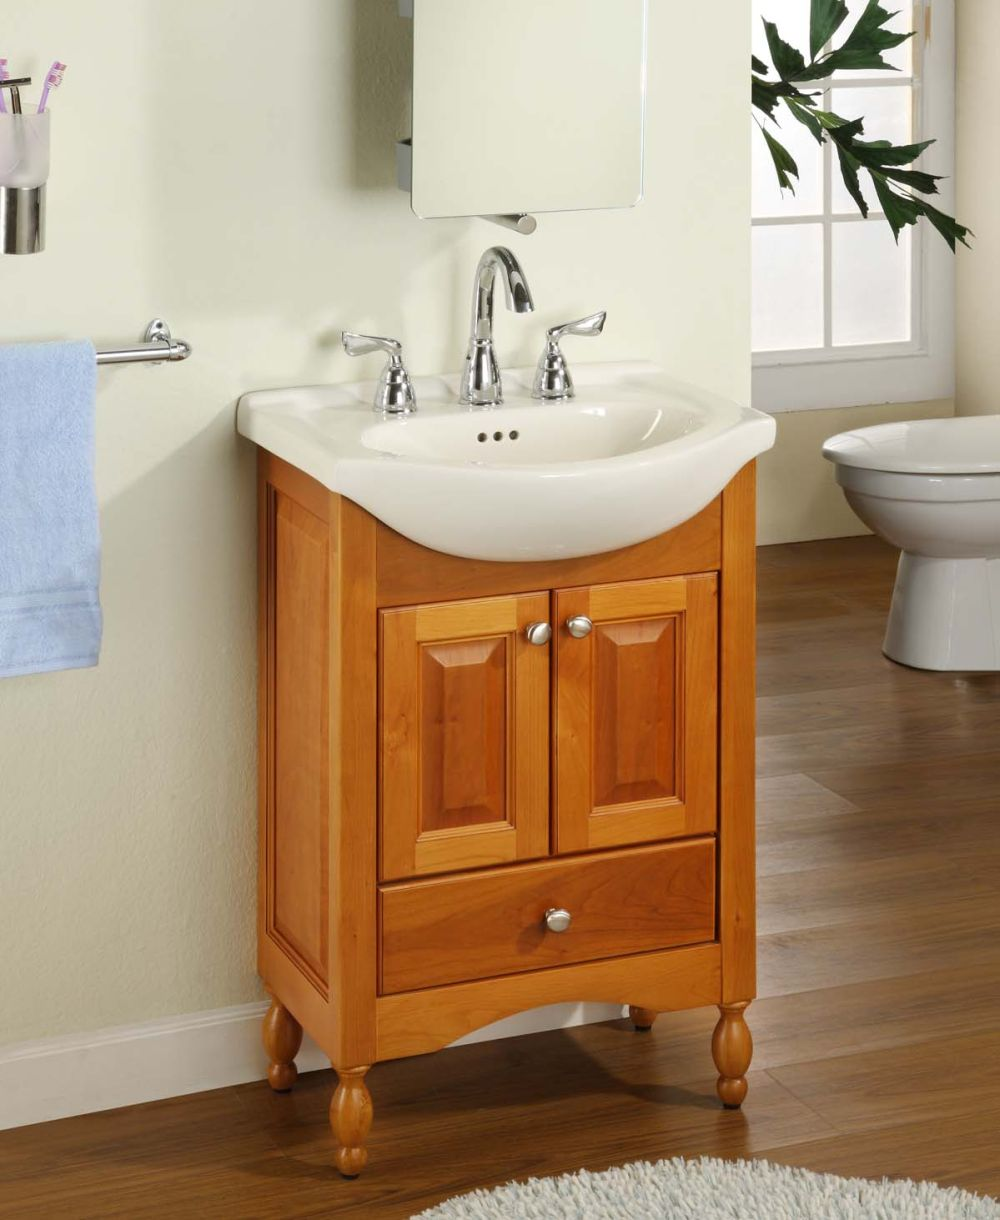 small narrow bathroom vanity sets with cute white sink and wall mounted mirror plus towel handle